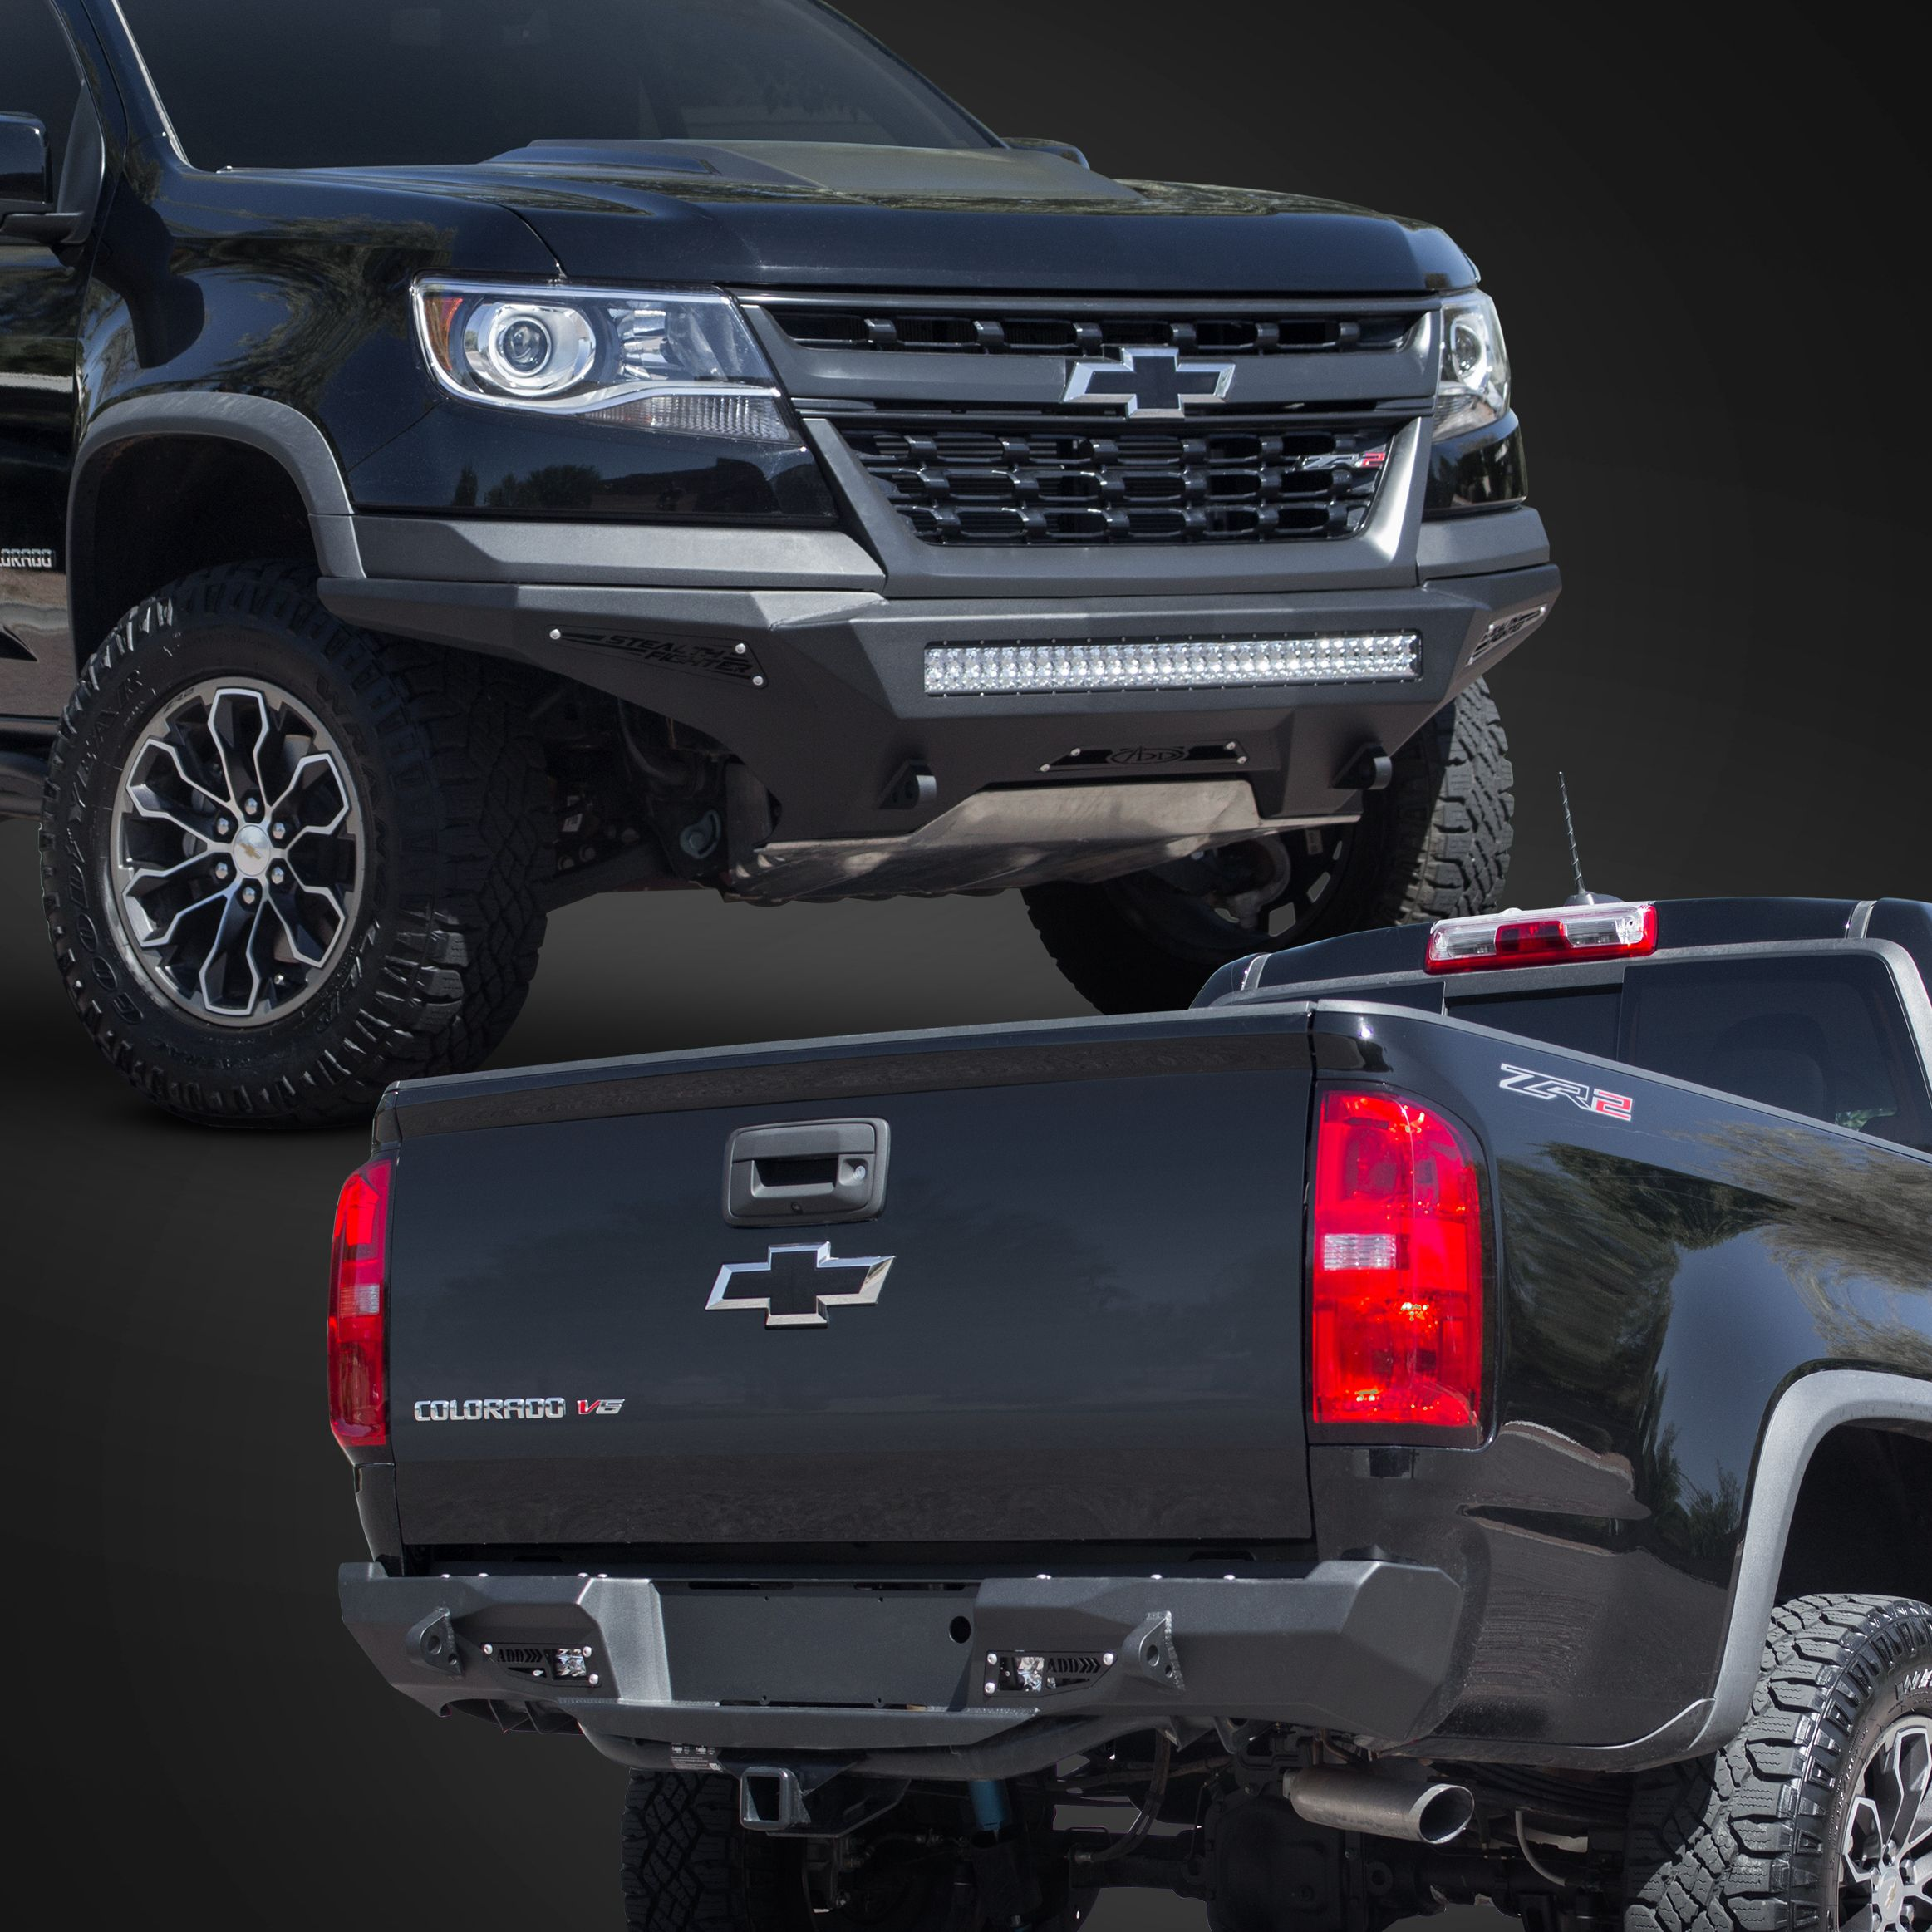 Addictive Desert Designs Is Excited To Announce The Release Of Our Stealth Fighter Line For The Chevy Zr2 Clic Chevy Colorado Accessories Chevy Colorado Chevy